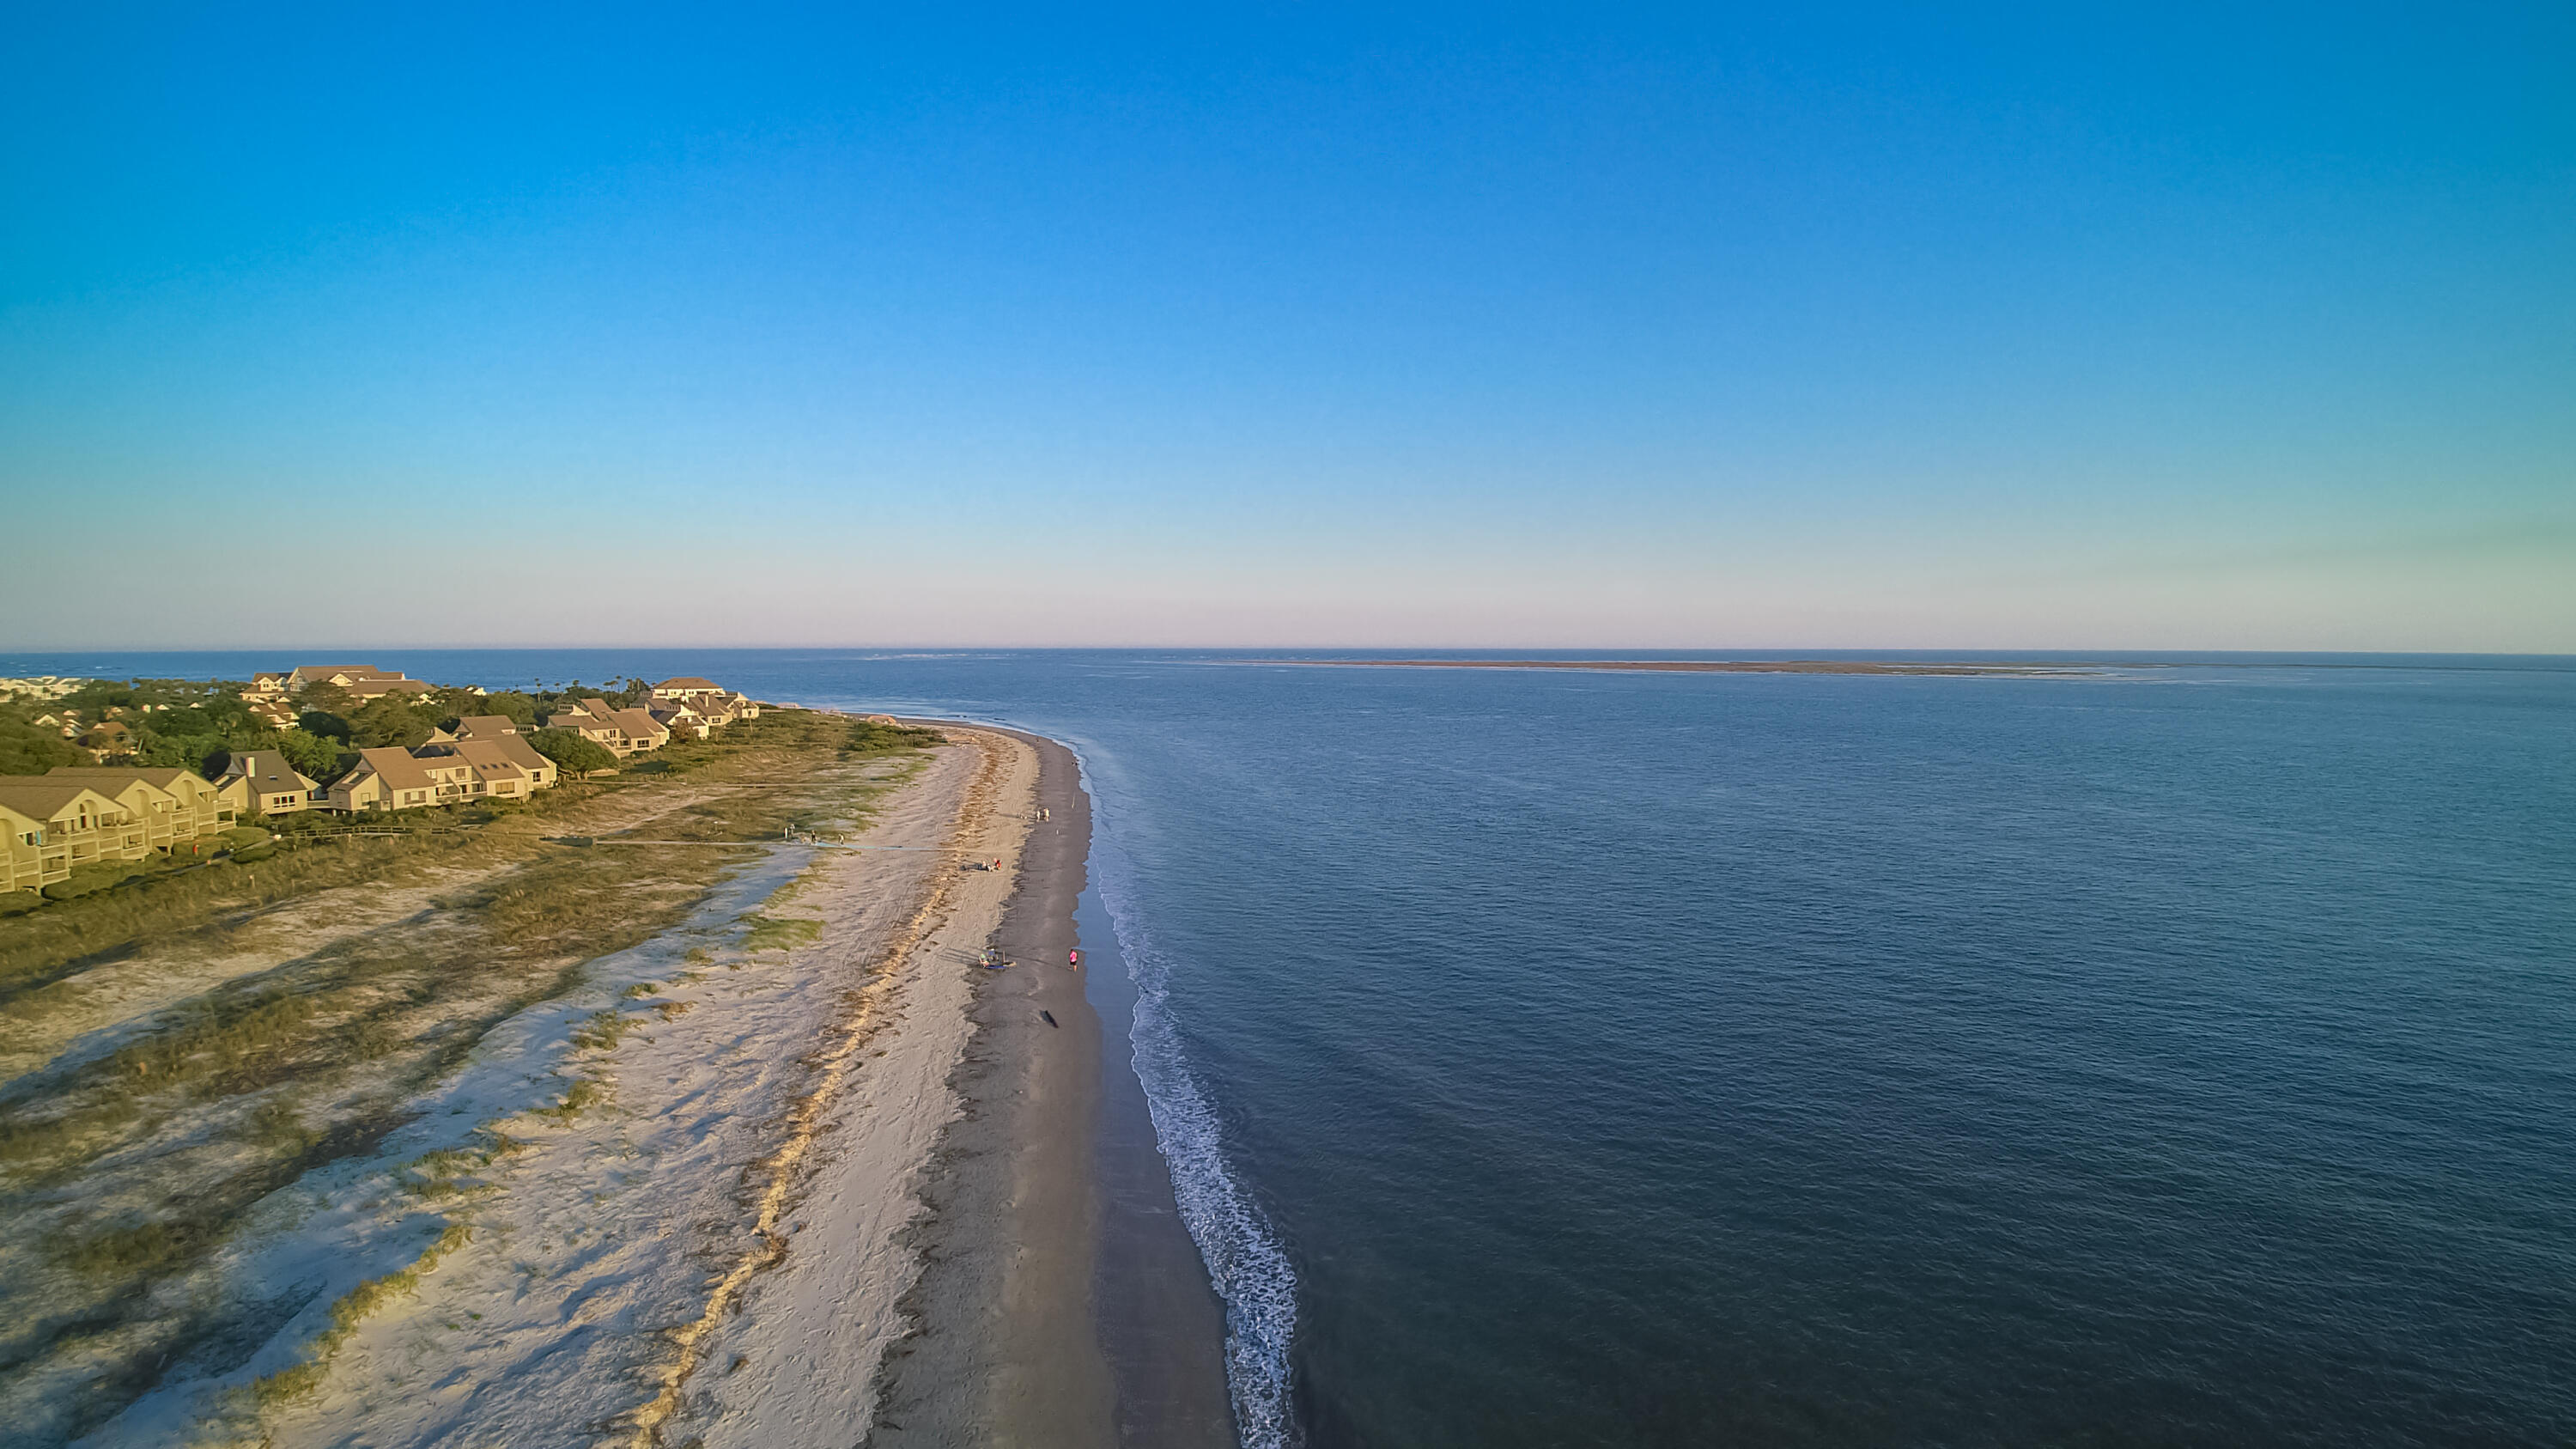 Seabrook Island Homes For Sale - 1329 Pelican Watch Villas, Seabrook Island, SC - 9